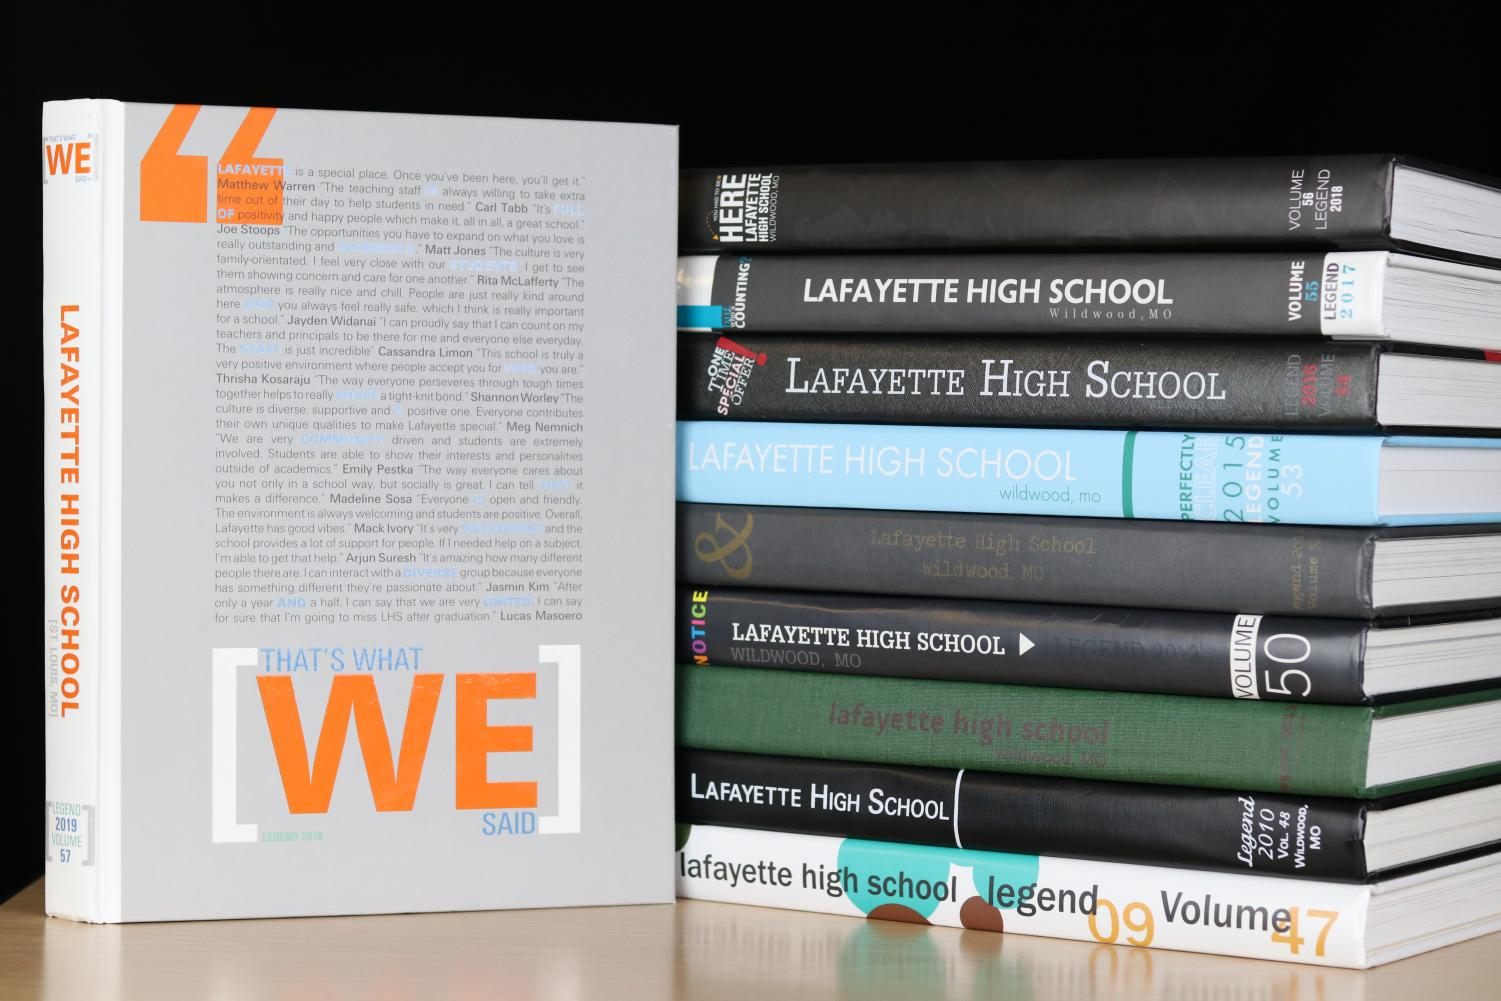 Lafayette's yearbook, the Legend, is the latest inductee into the National Scholastic Press Association's (NSPA) Hall of Fame.